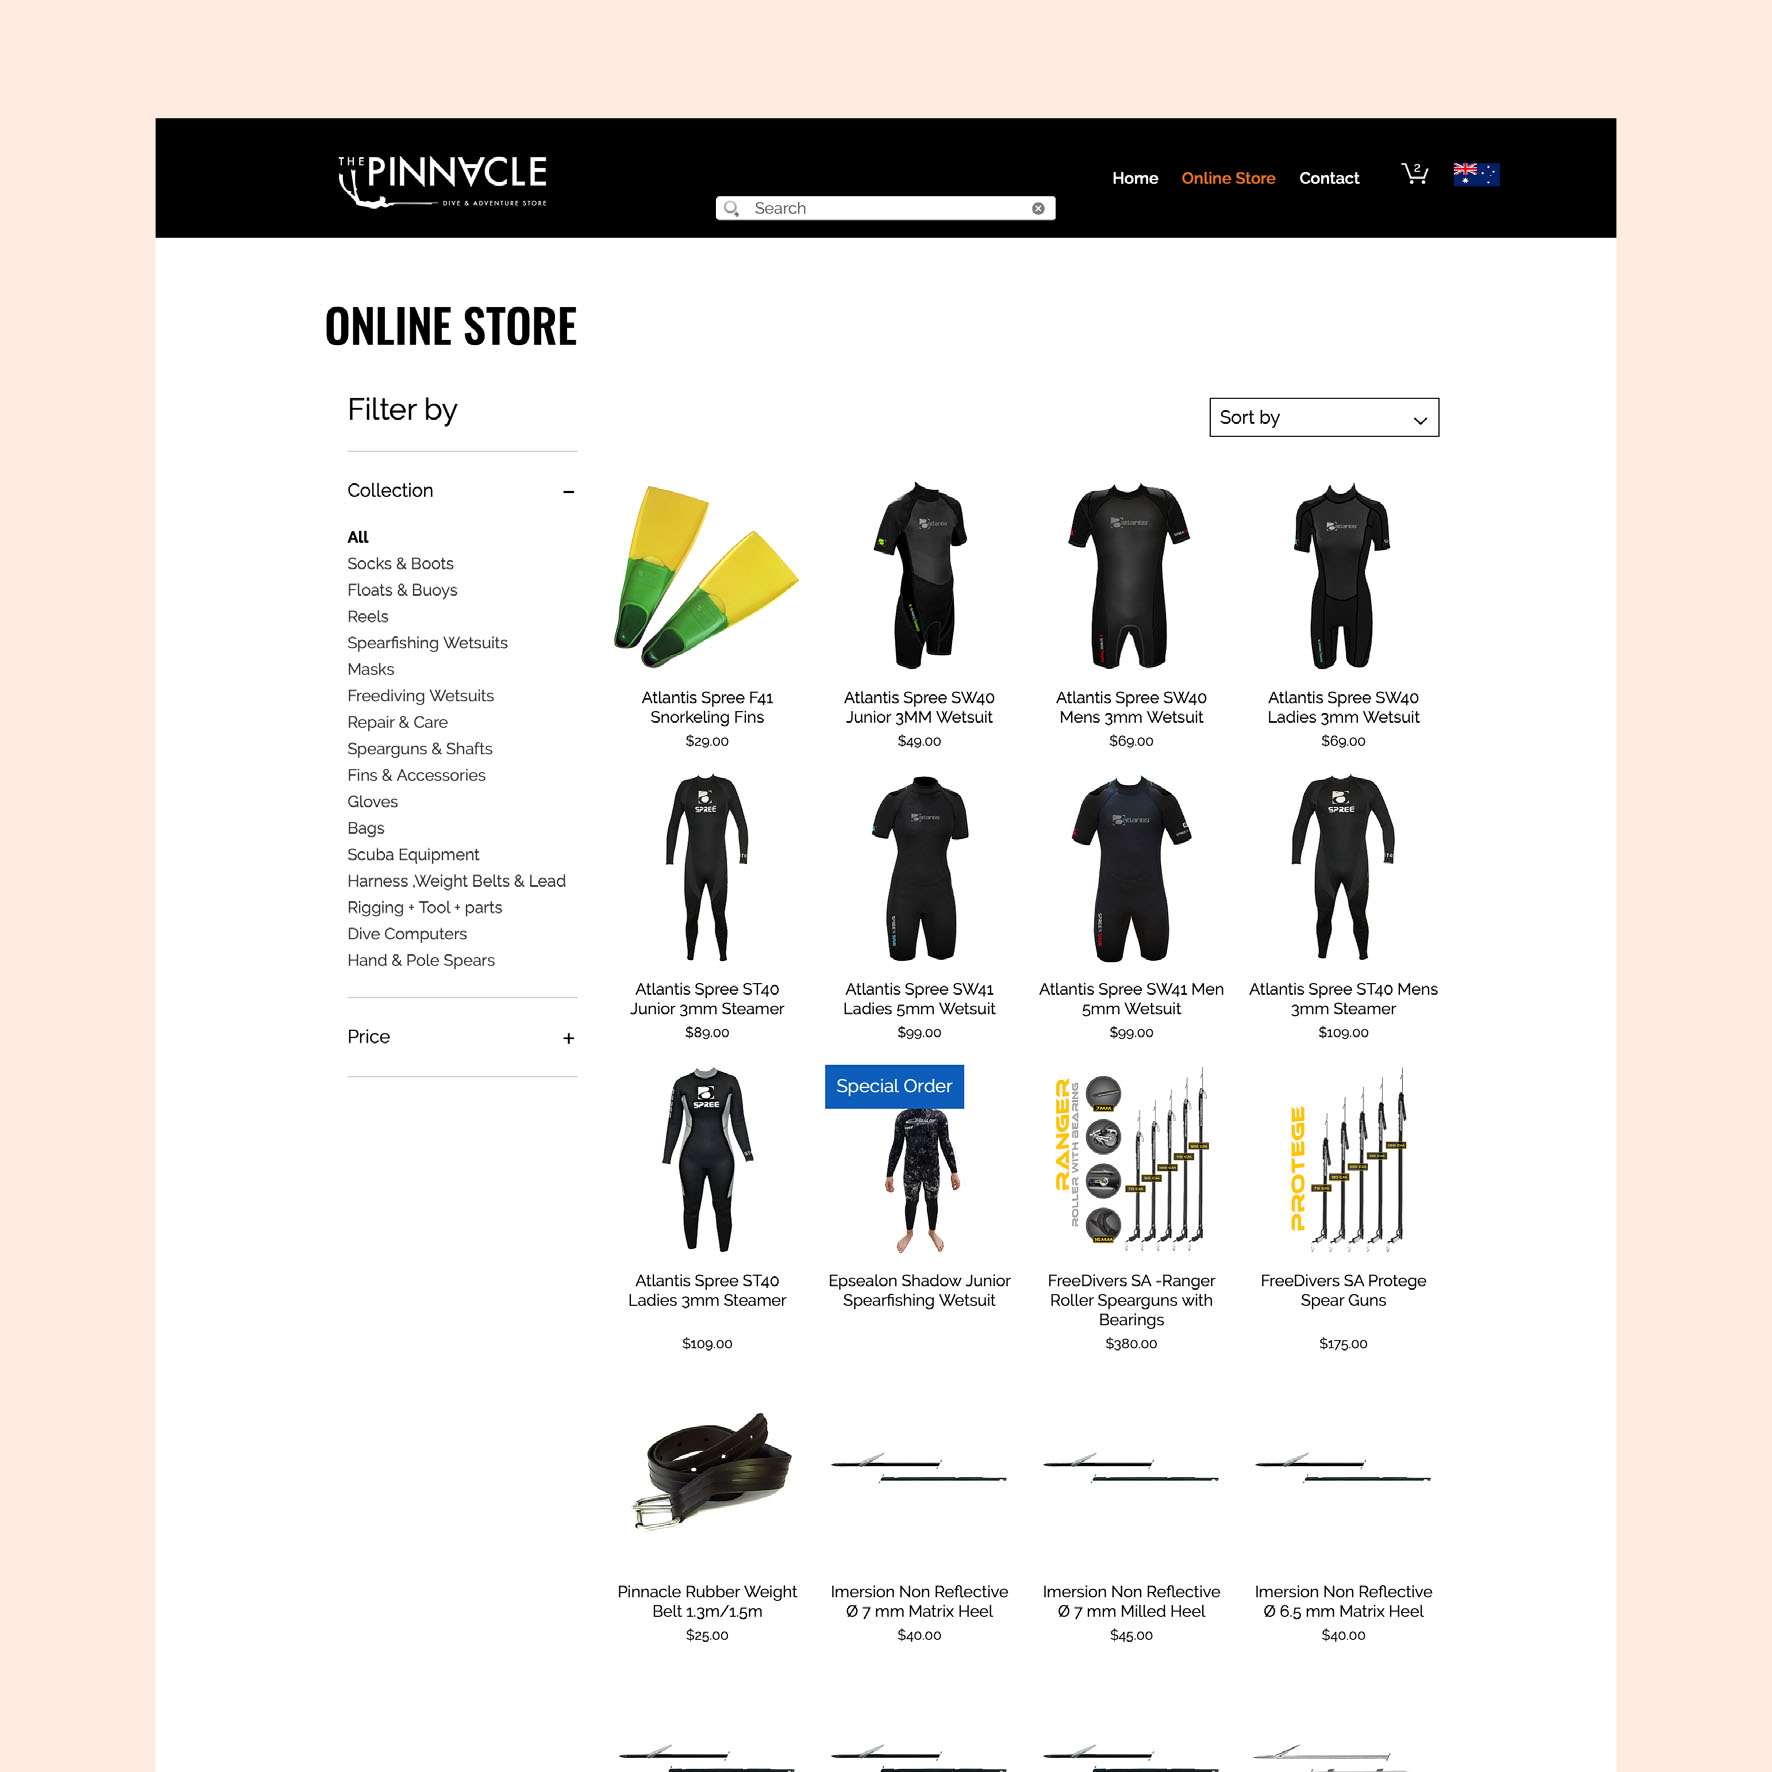 The Pinnacle Dive Online Store